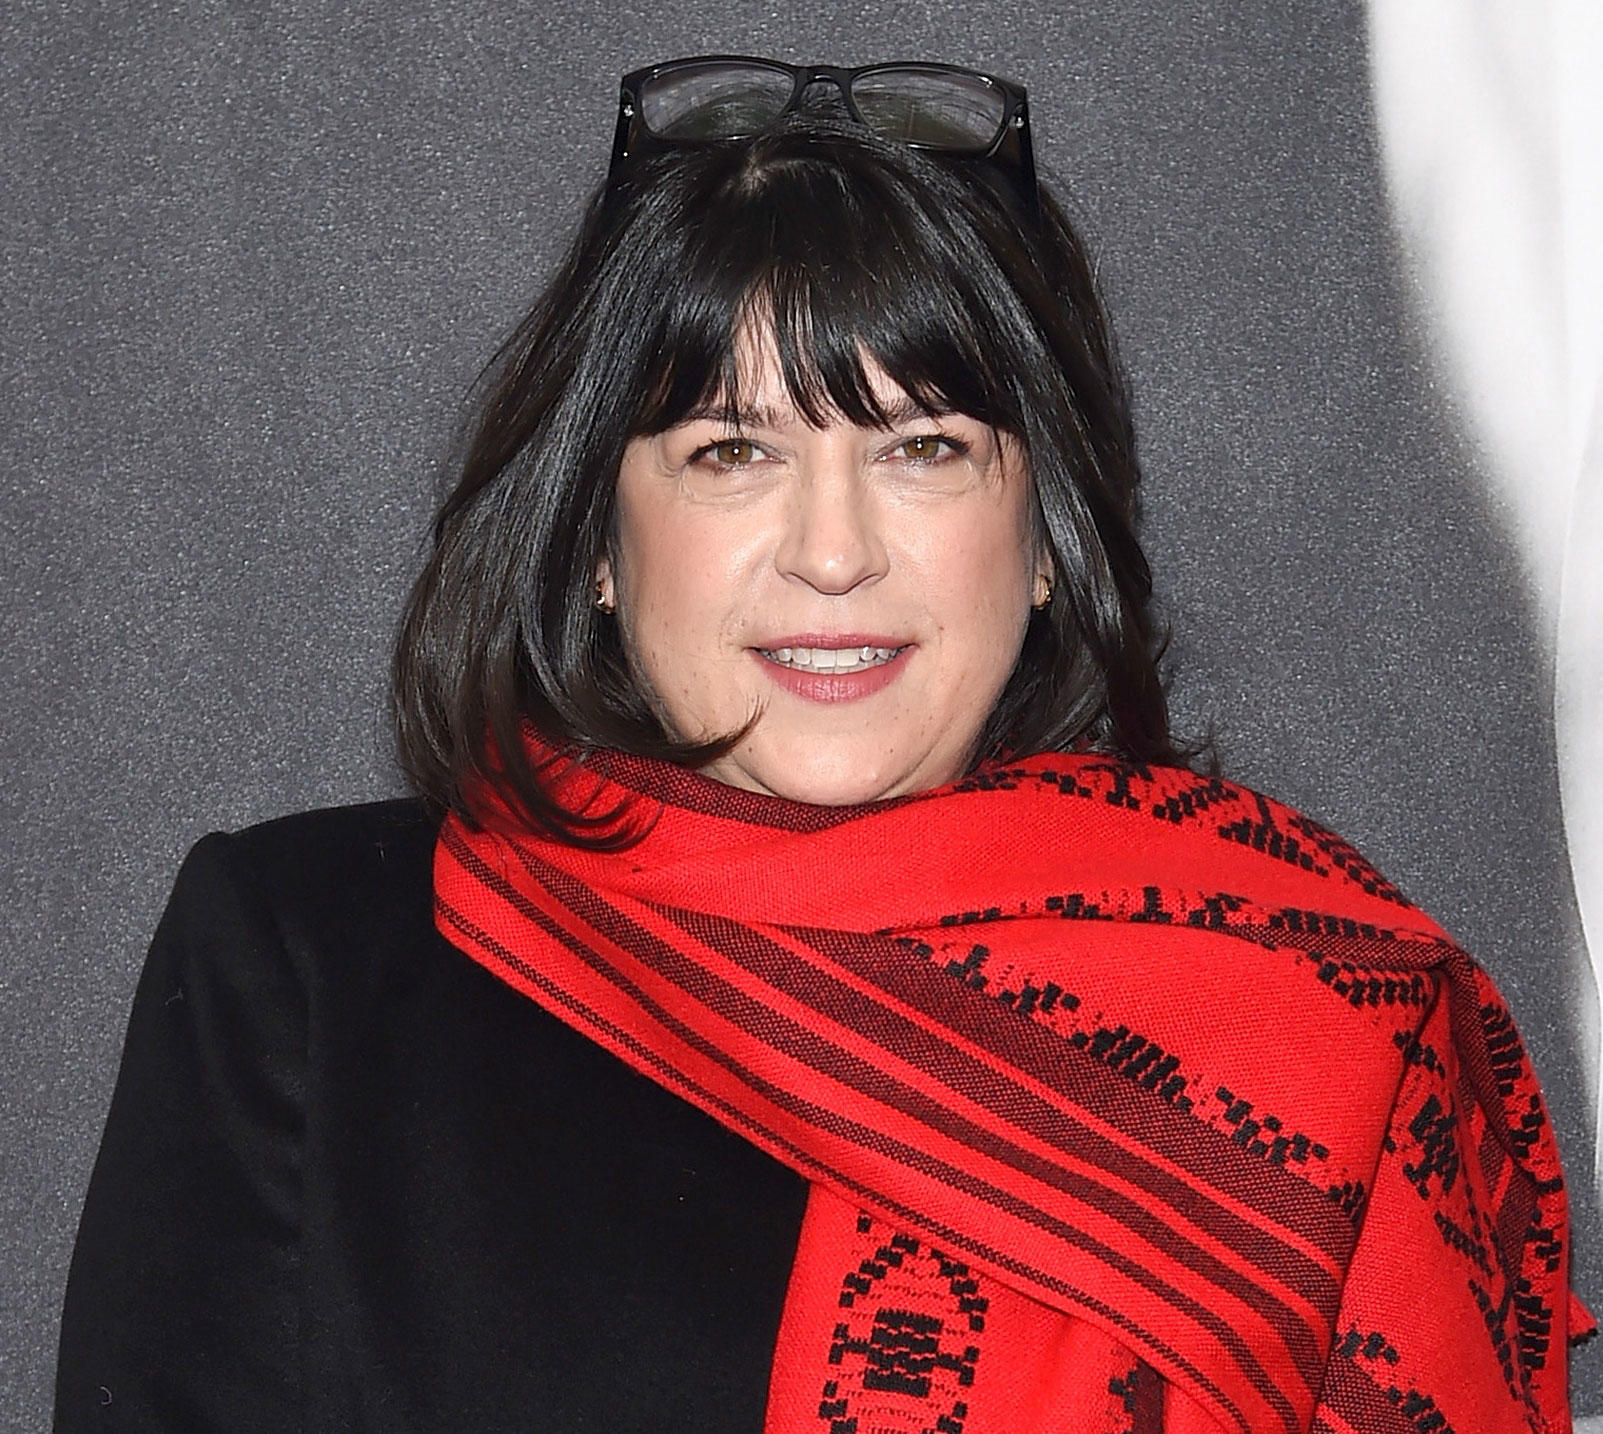 E.L. James at the New York screening of